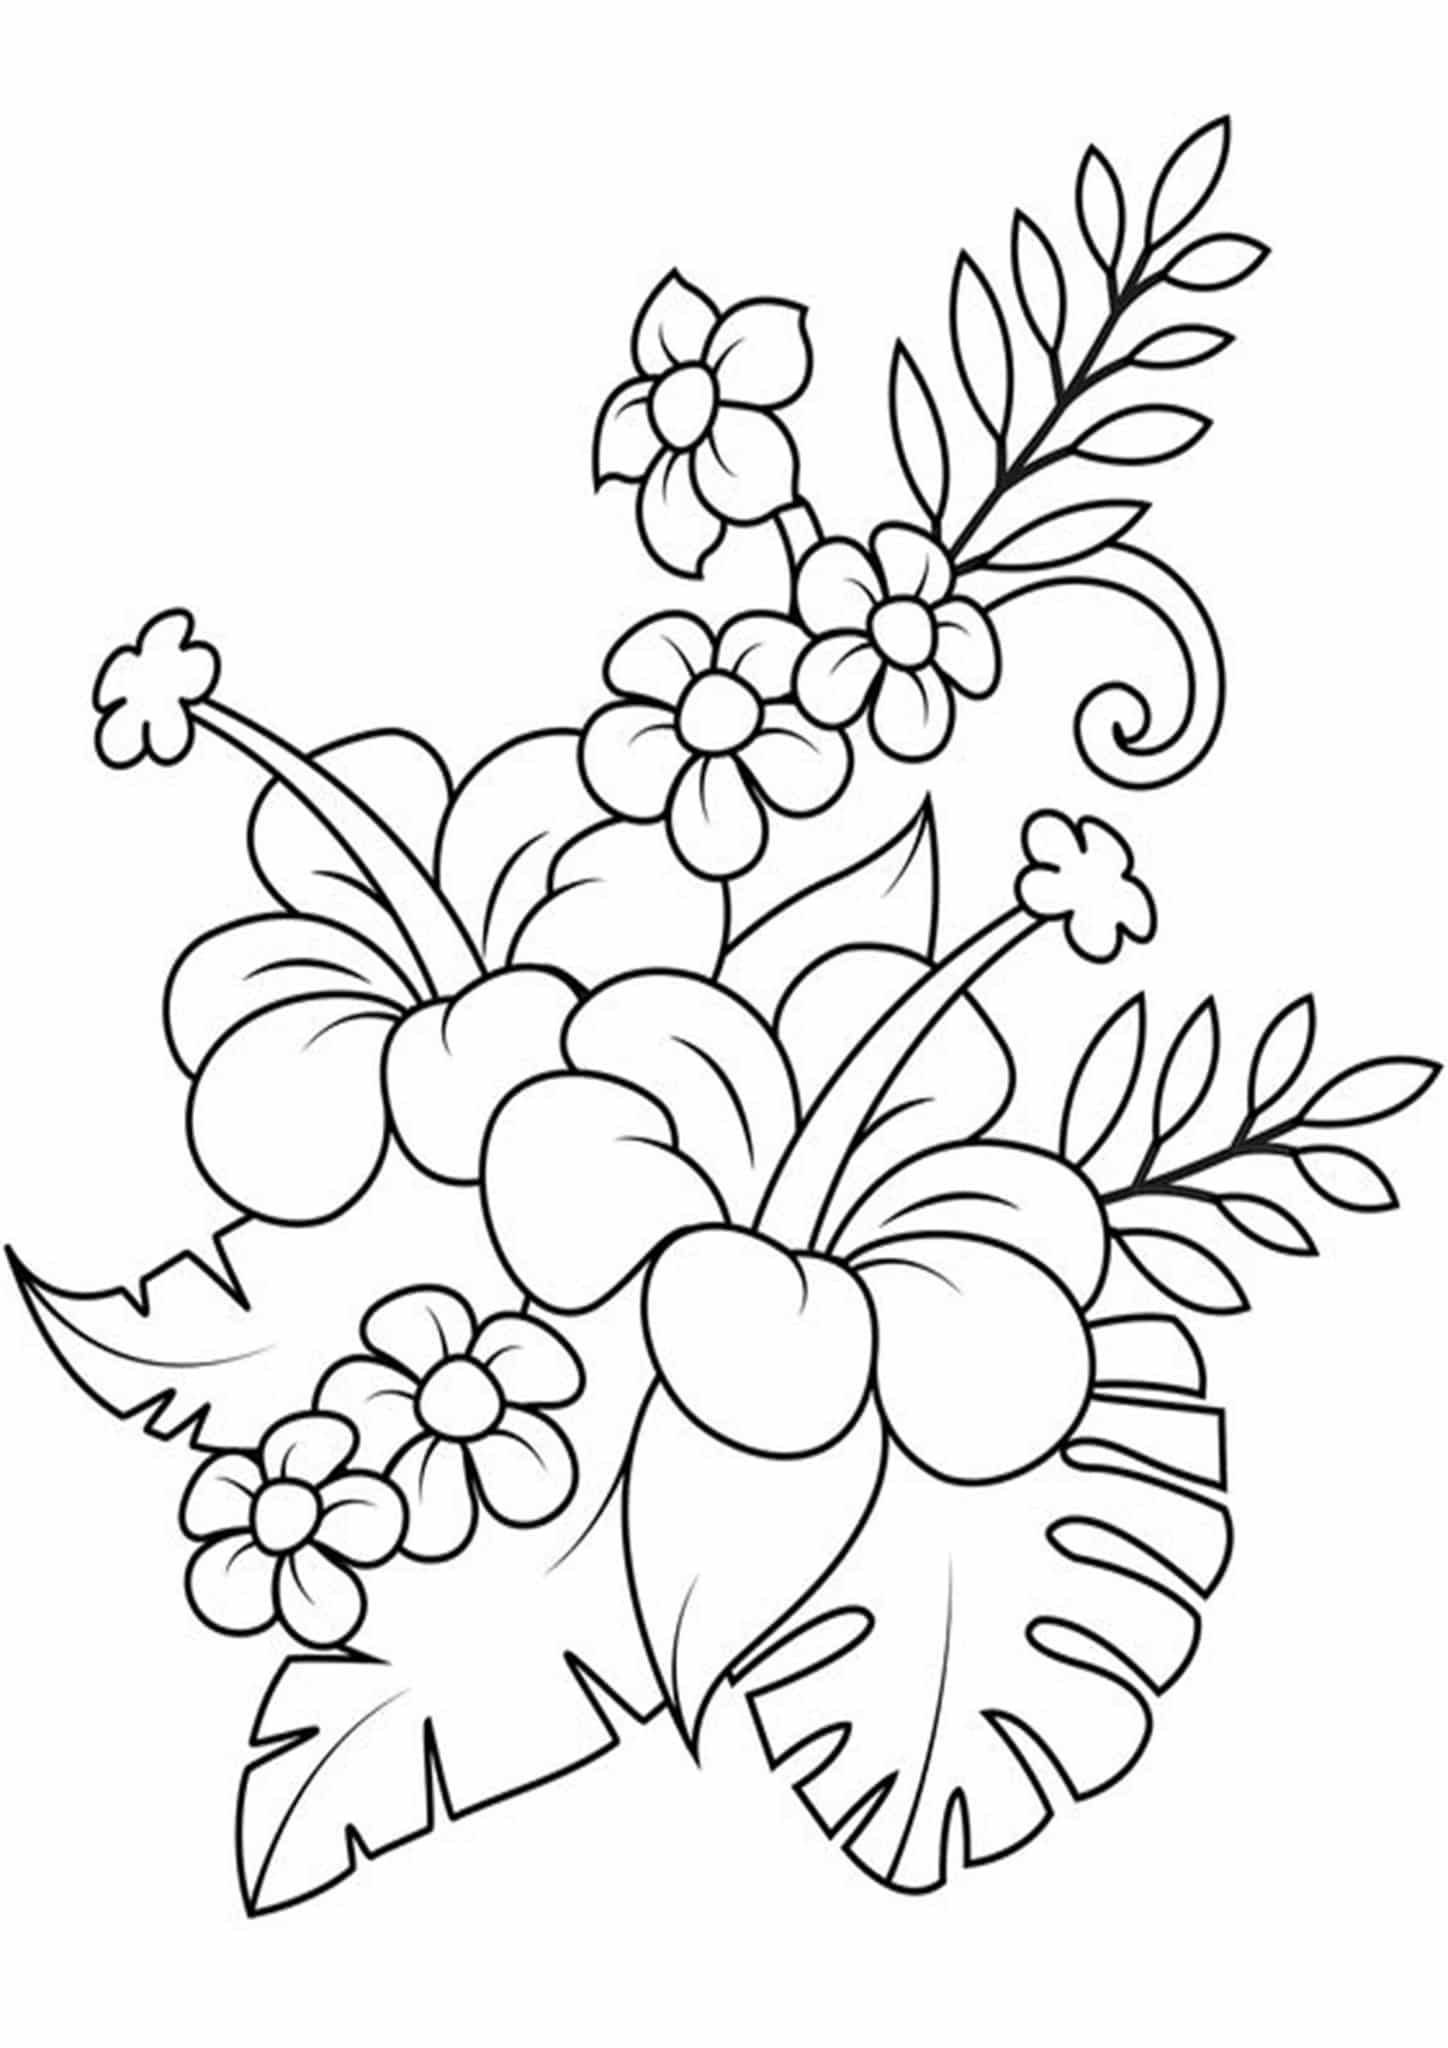 printable simple flower coloring pages very simple flower coloring page for preschool simple printable simple coloring pages flower